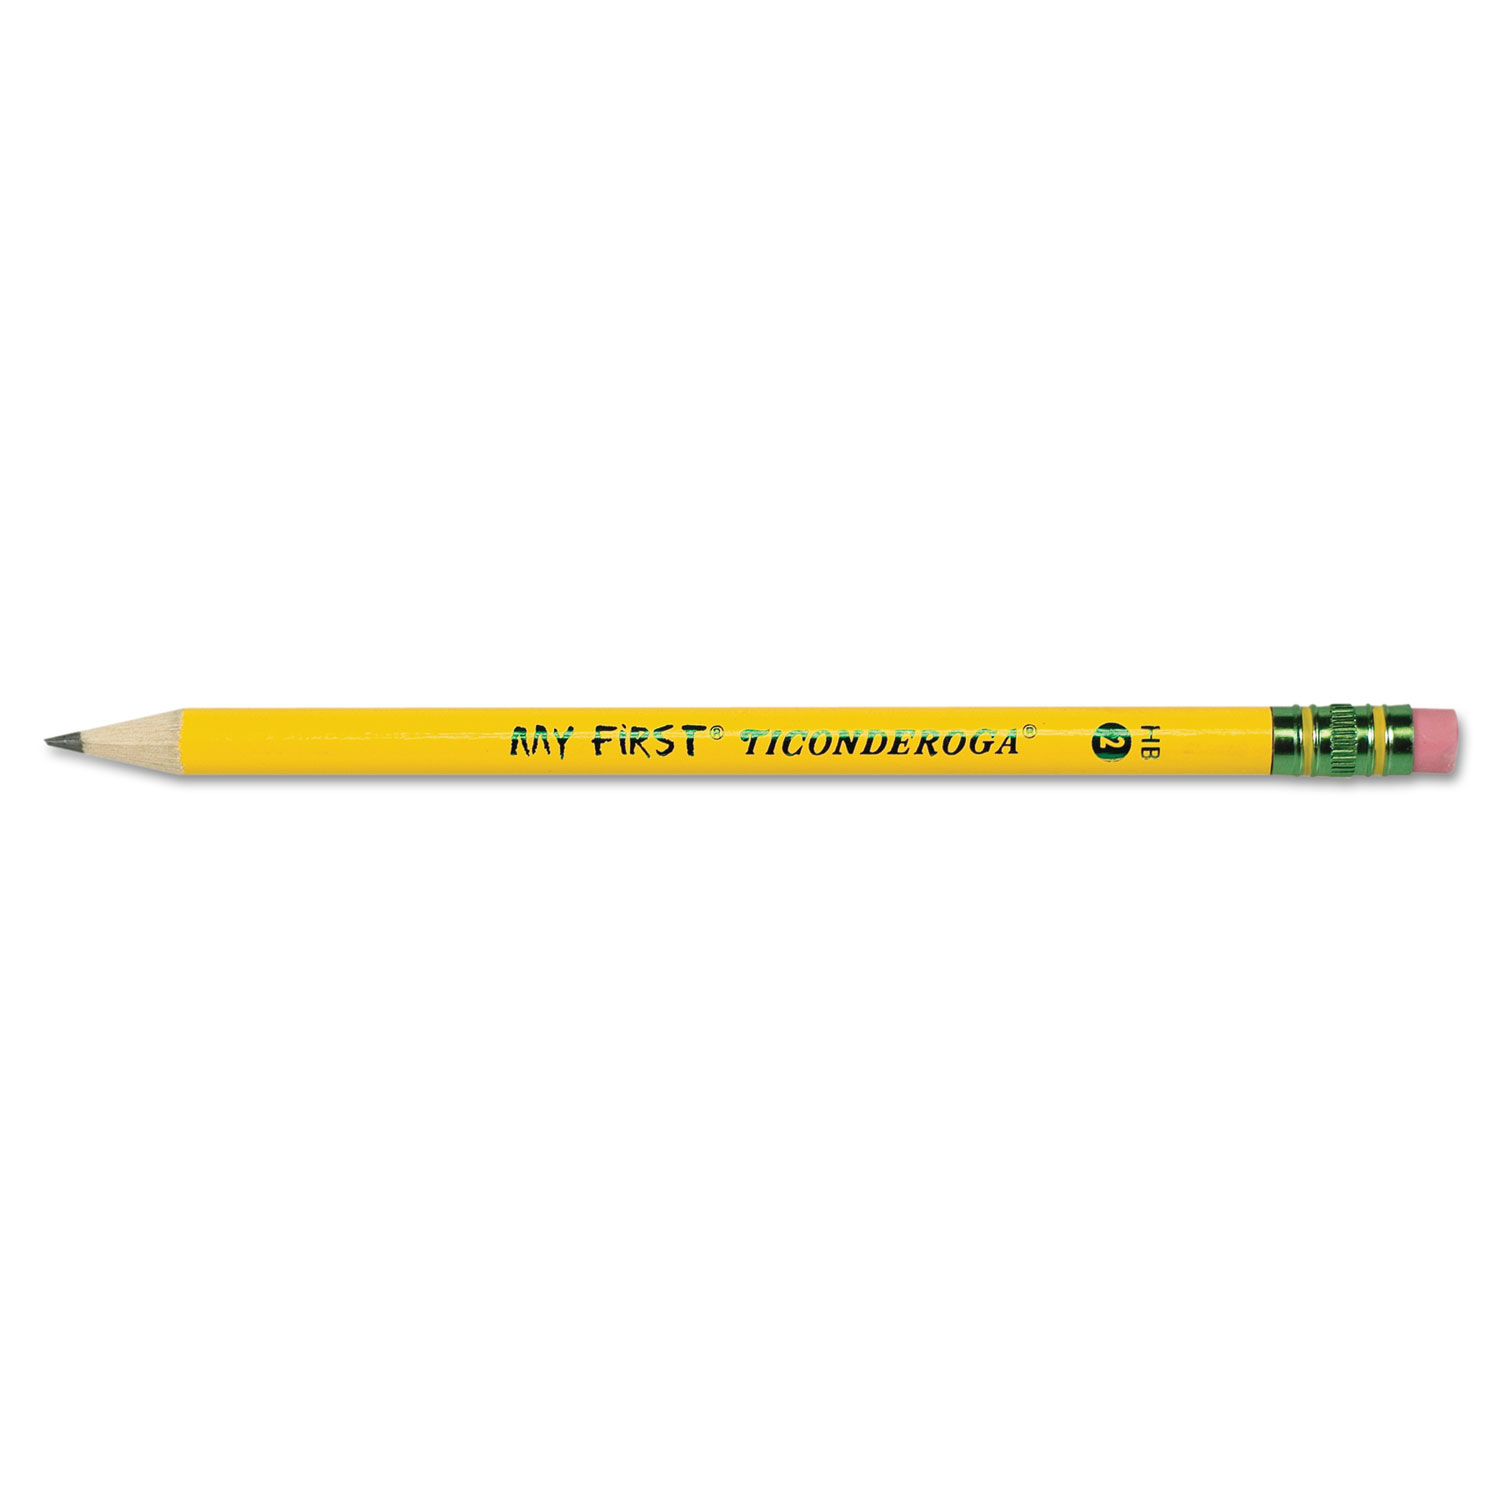 My First Woodcase Pencil with Eraser, HB (#2), Black Lead, Yellow Barrel, Dozen